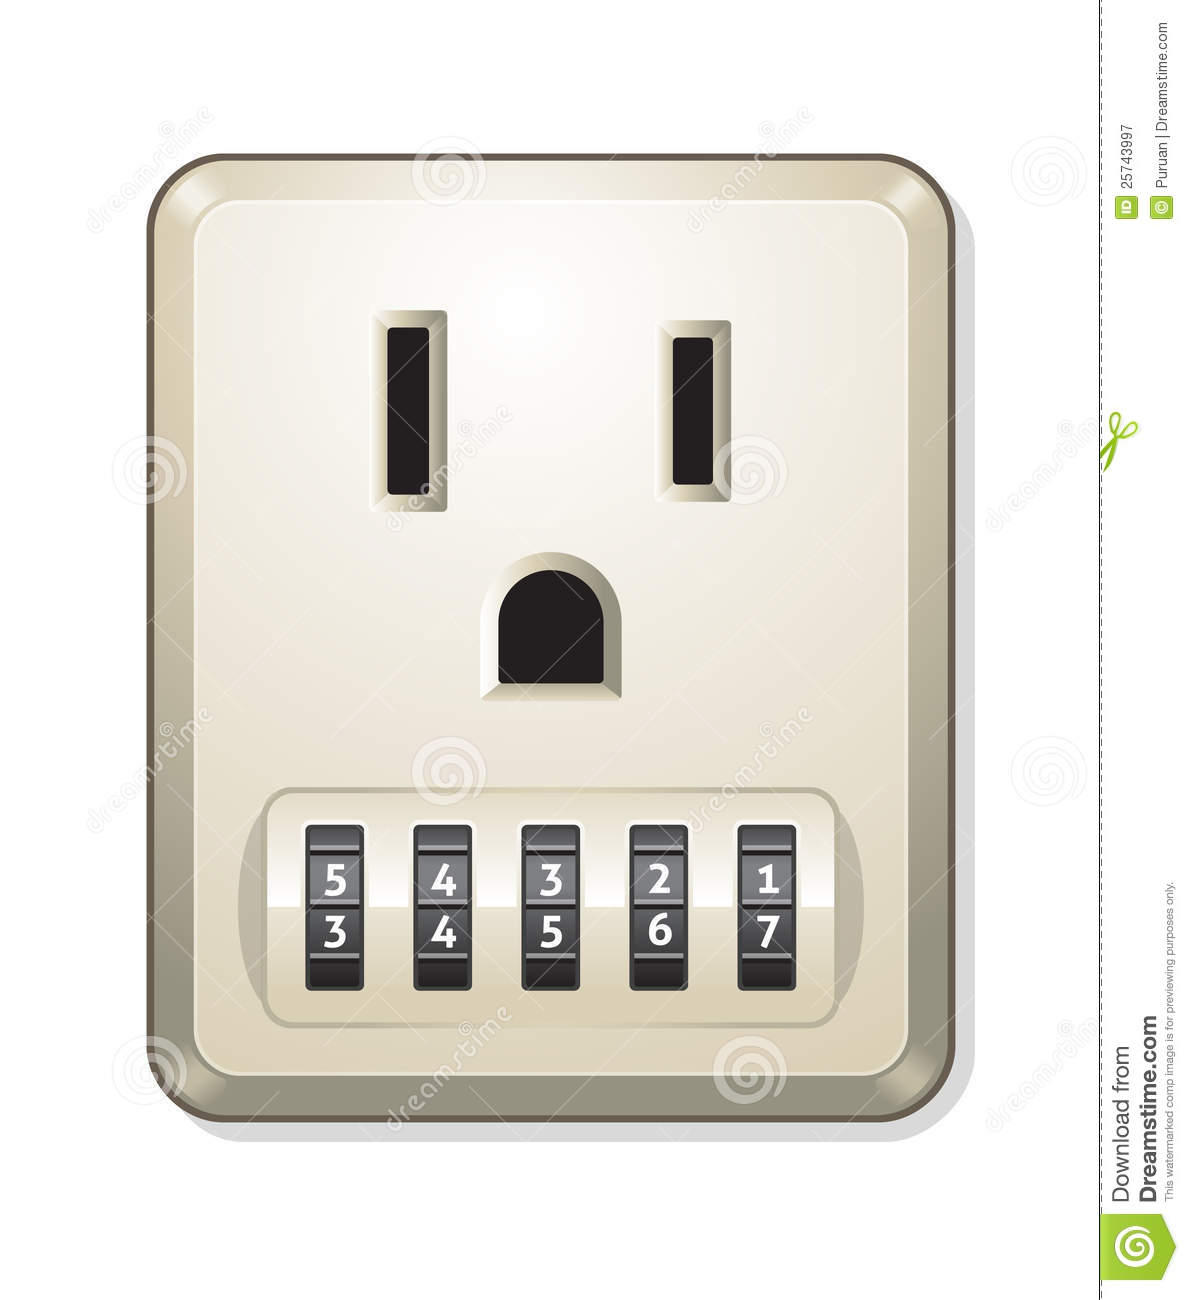 Royalty Free Stock Photography Electric Outlet  bination Lock Image25743997 also Software Inclinalysis furthermore Royalty Free Stock Image Global  works Digital Connections Around World Map Illustration Image40338456 as well Transfer switch in addition Royalty Free Stock Photo Digital Code Image2322705. on wire connection symbol